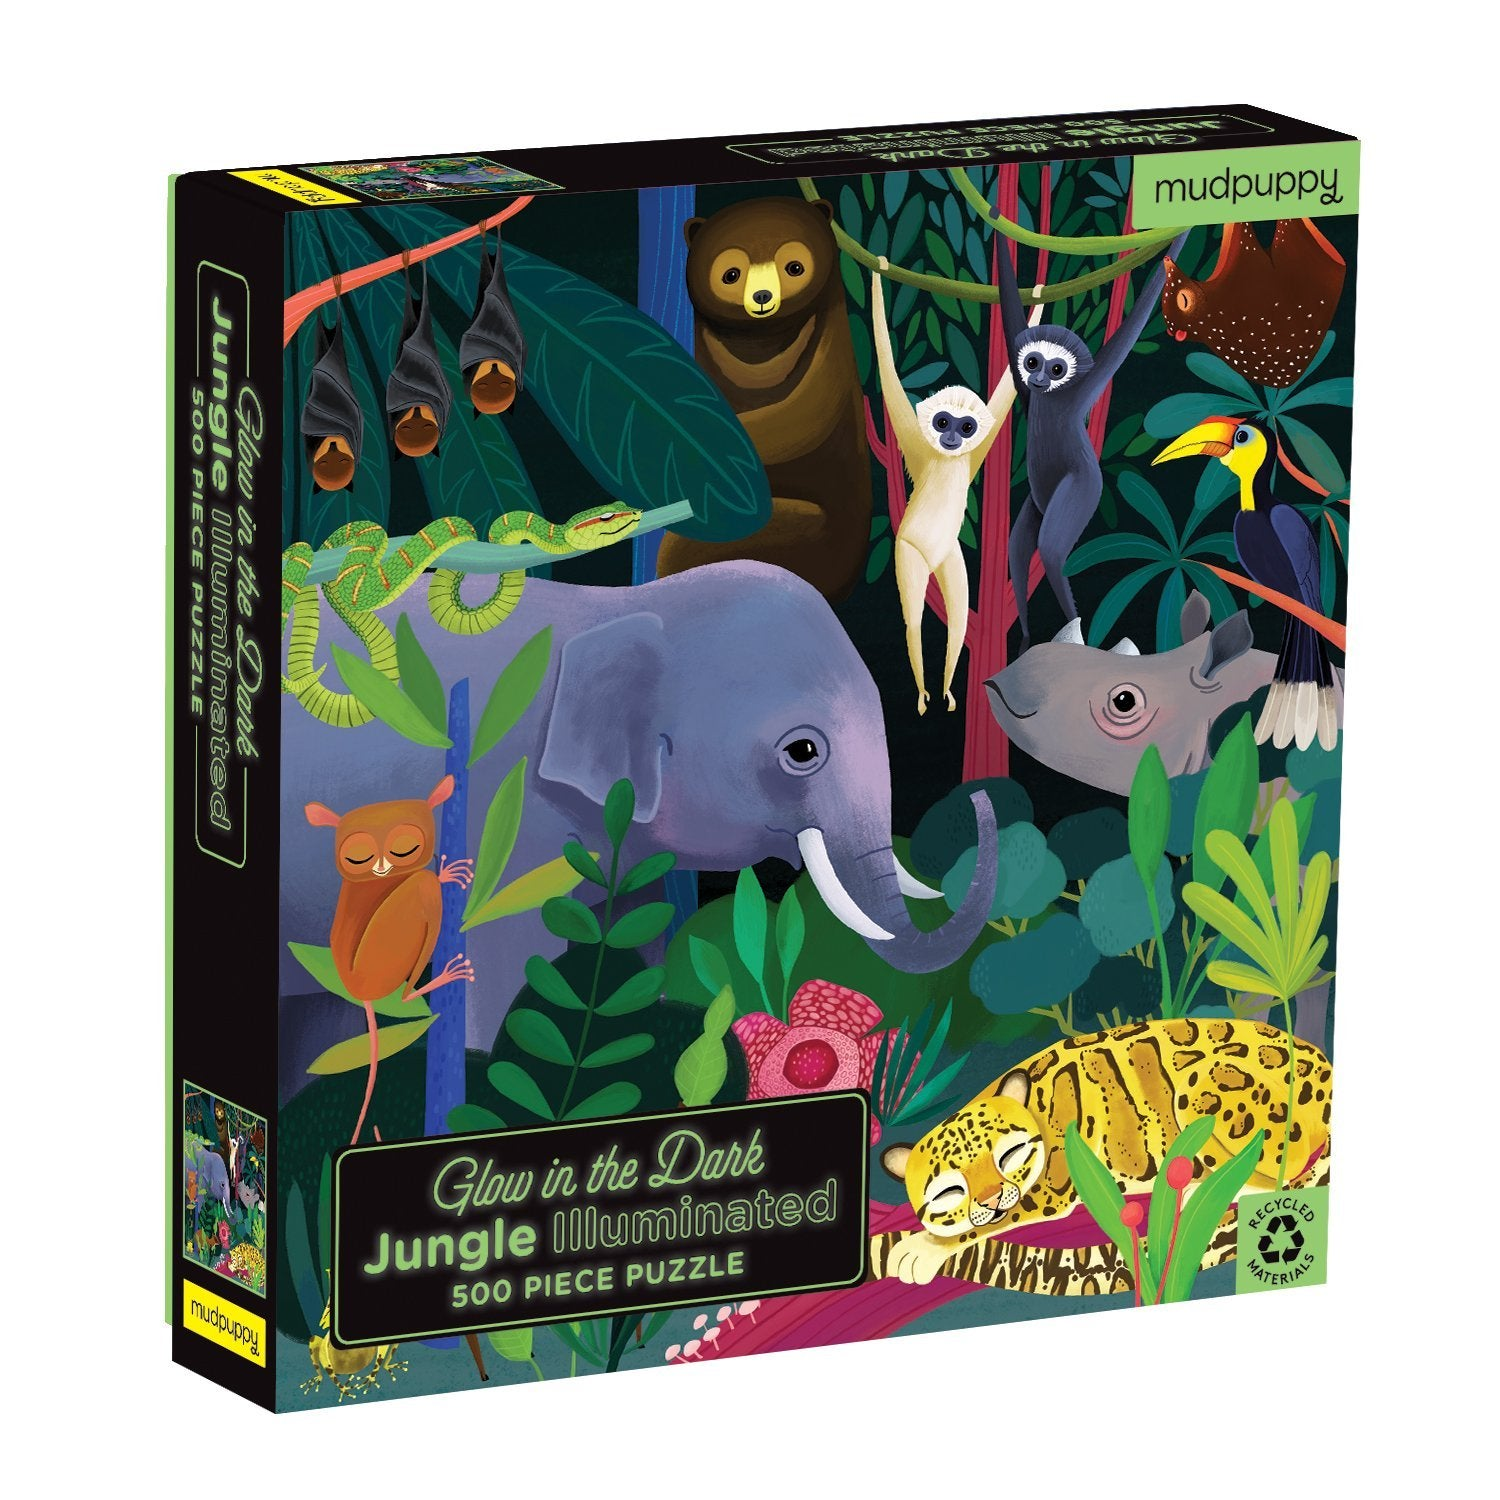 Jungle Illuminated 500 Piece Glow in the Dark Family Puzzle